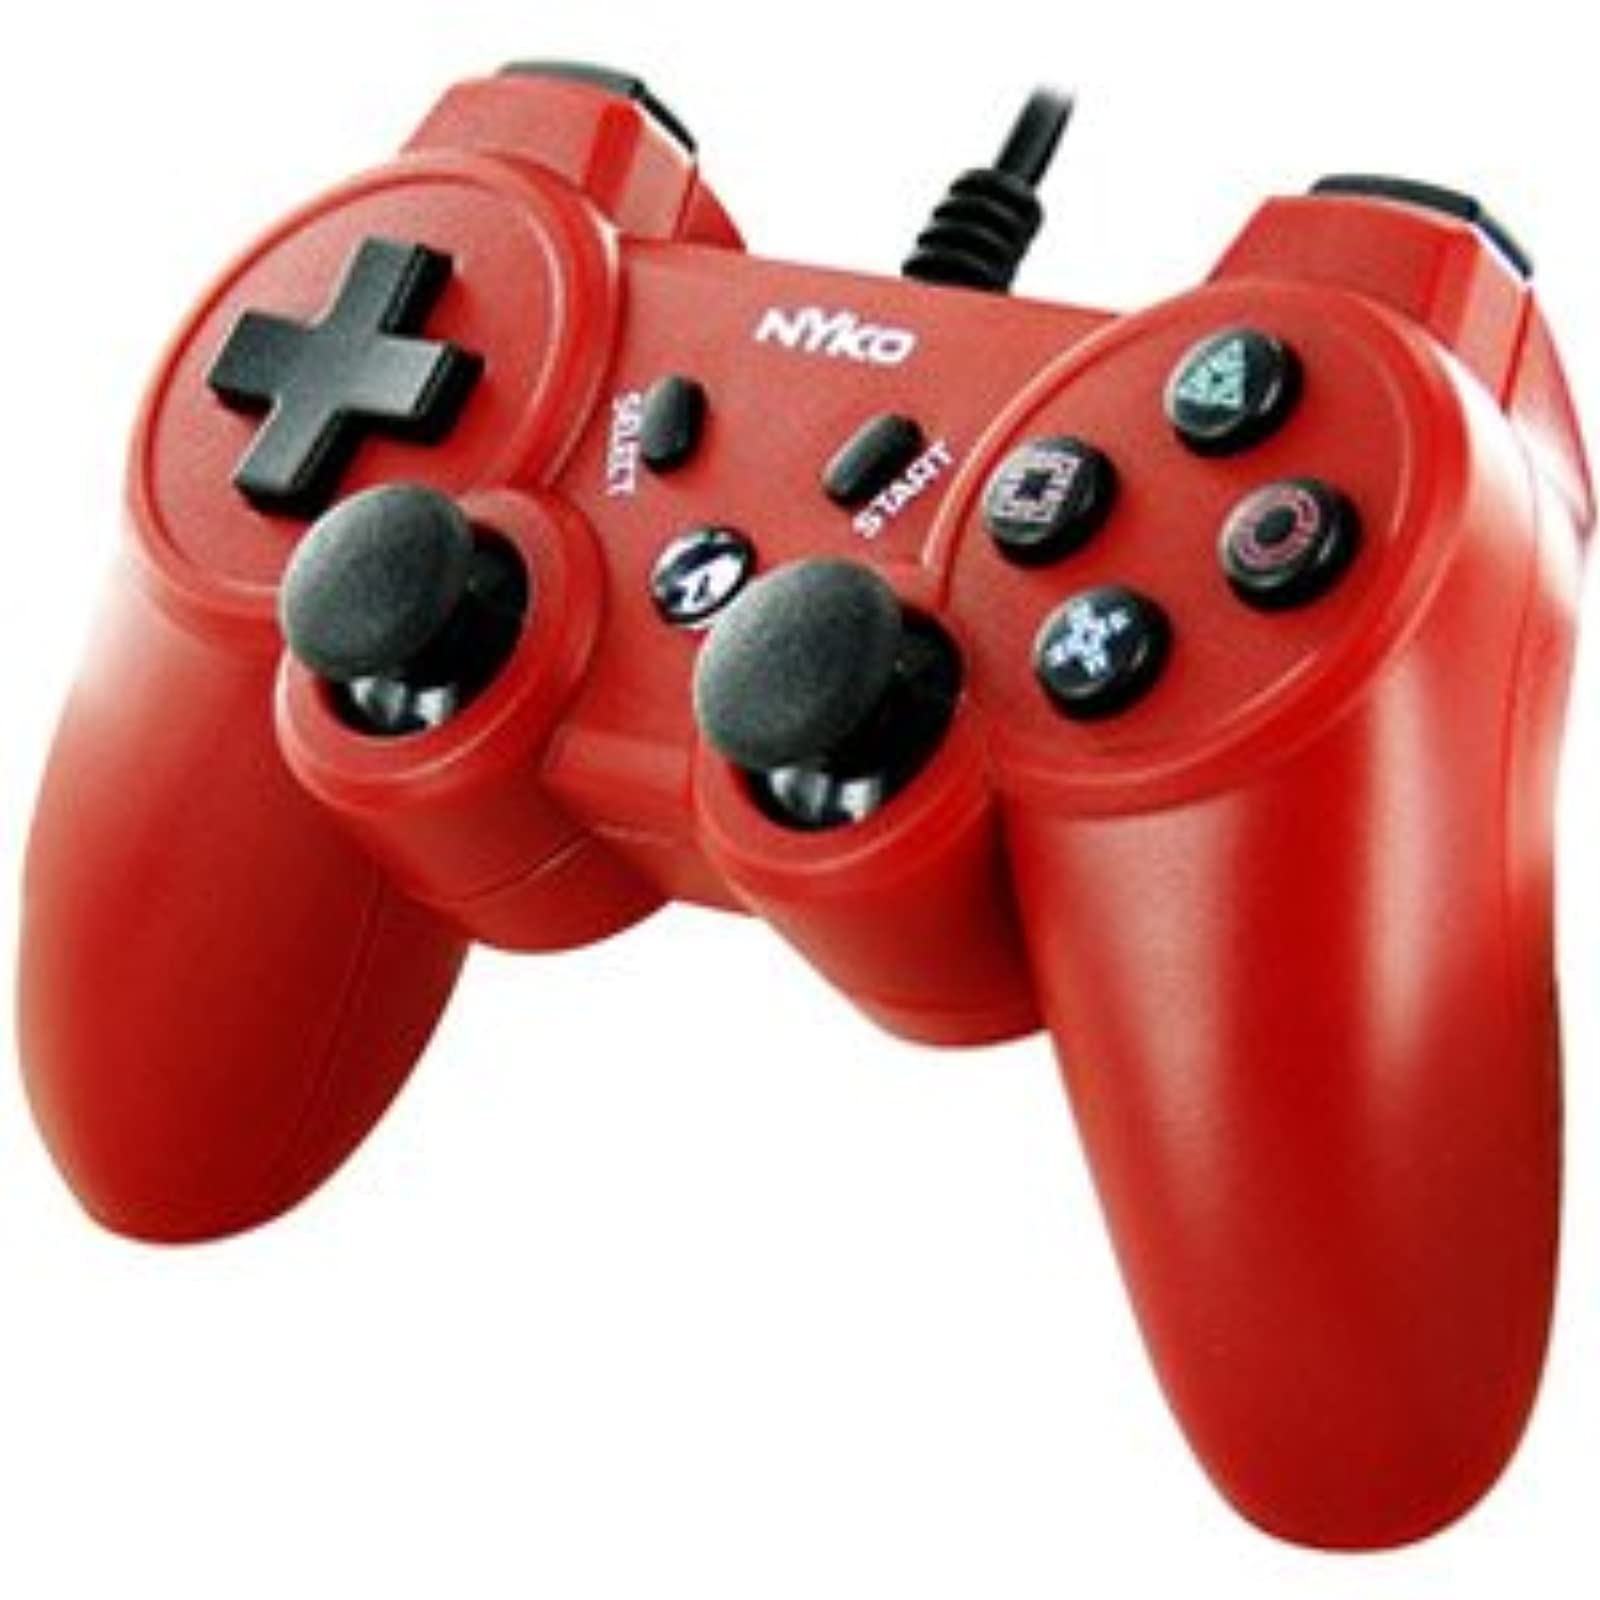 Nyko Core Controller For PS3 Red For PlayStation 3